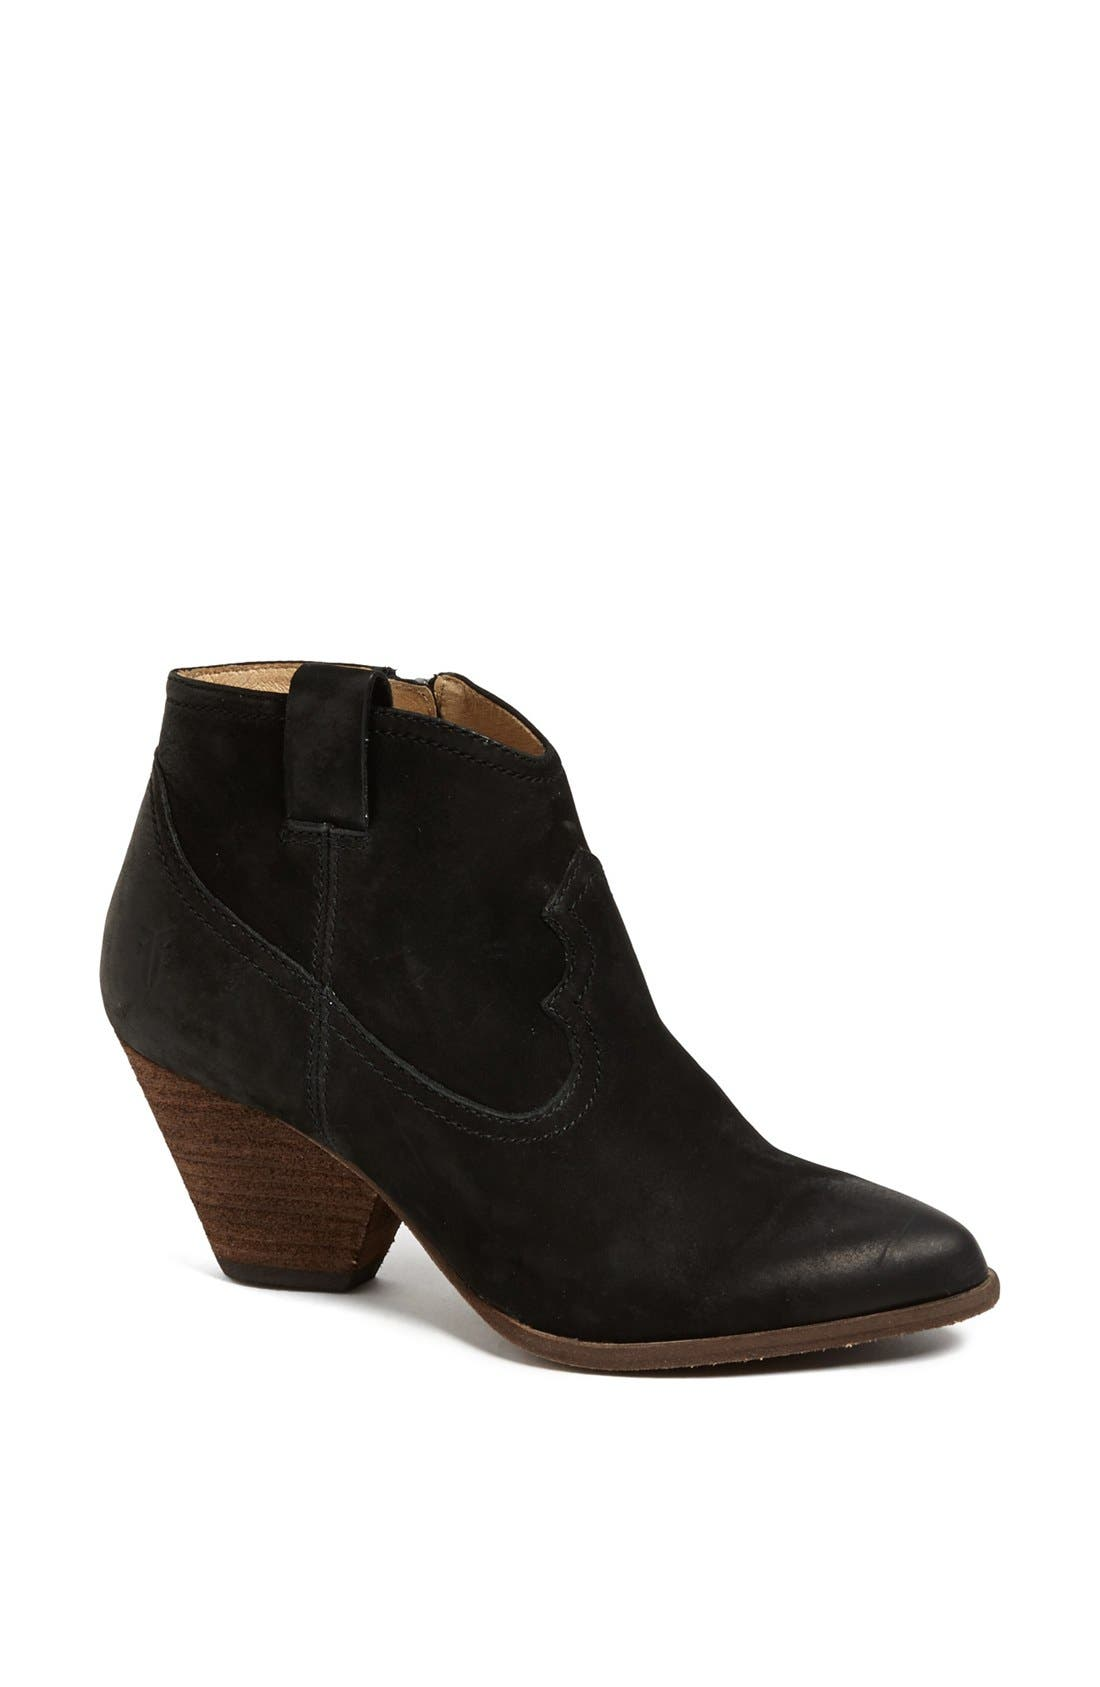 'Reina' Bootie, Main, color, 001